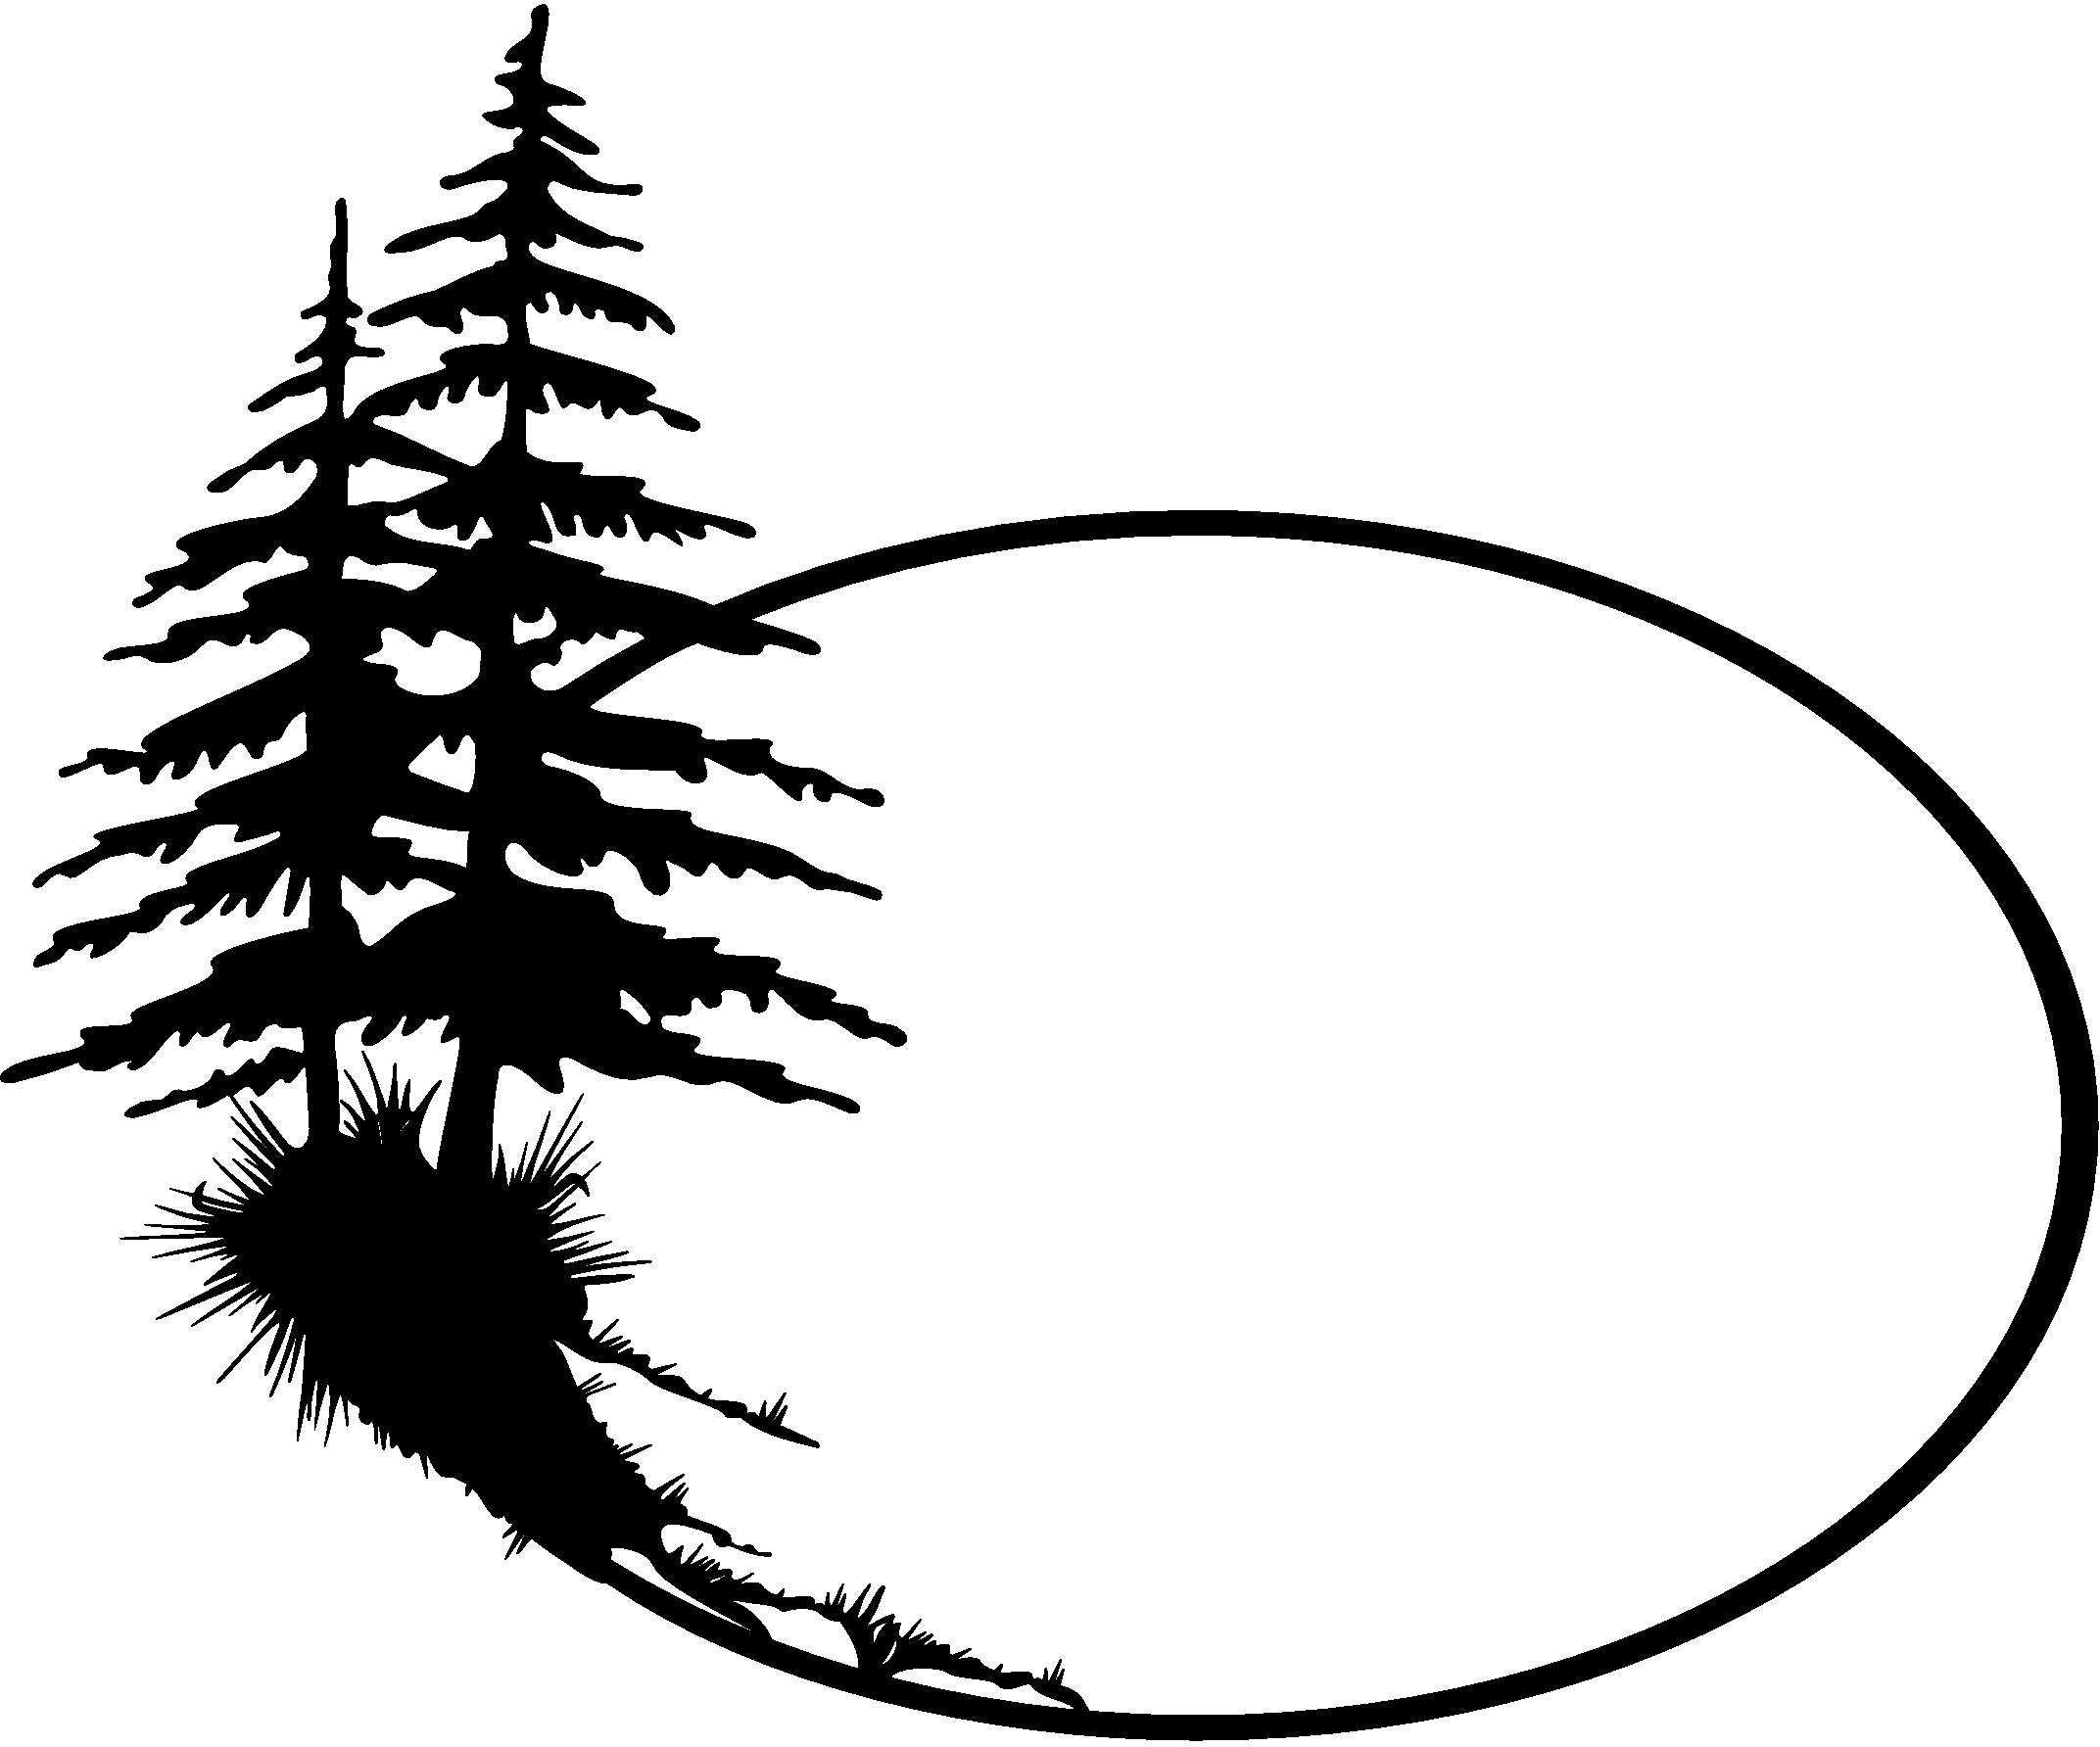 Tree by a river black and white clipart clip art library download Free Mountain Tree Cliparts, Download Free Clip Art, Free Clip Art ... clip art library download